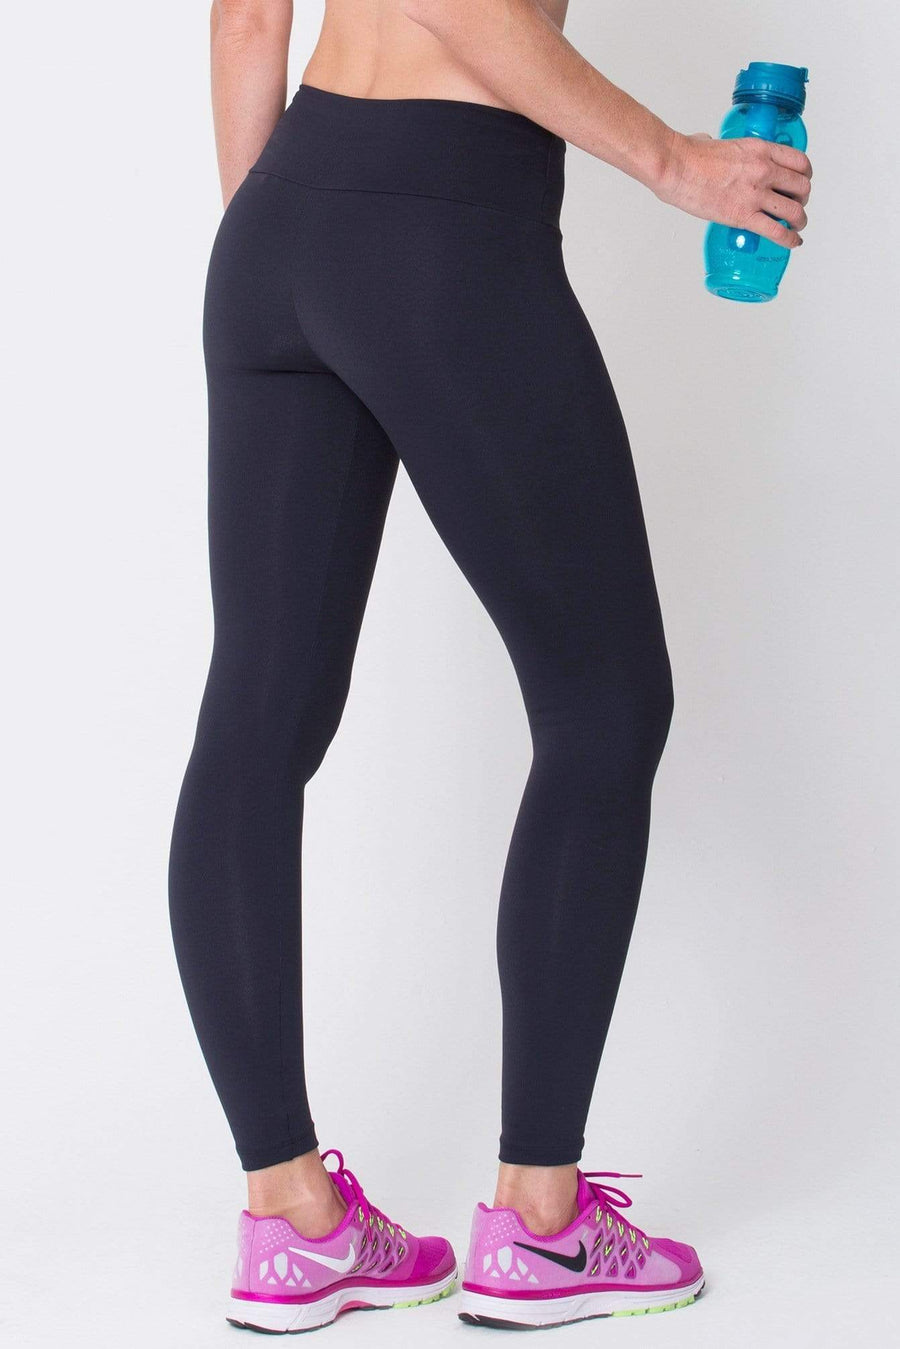 Black Essential Legging - Sam's Fitness Goods